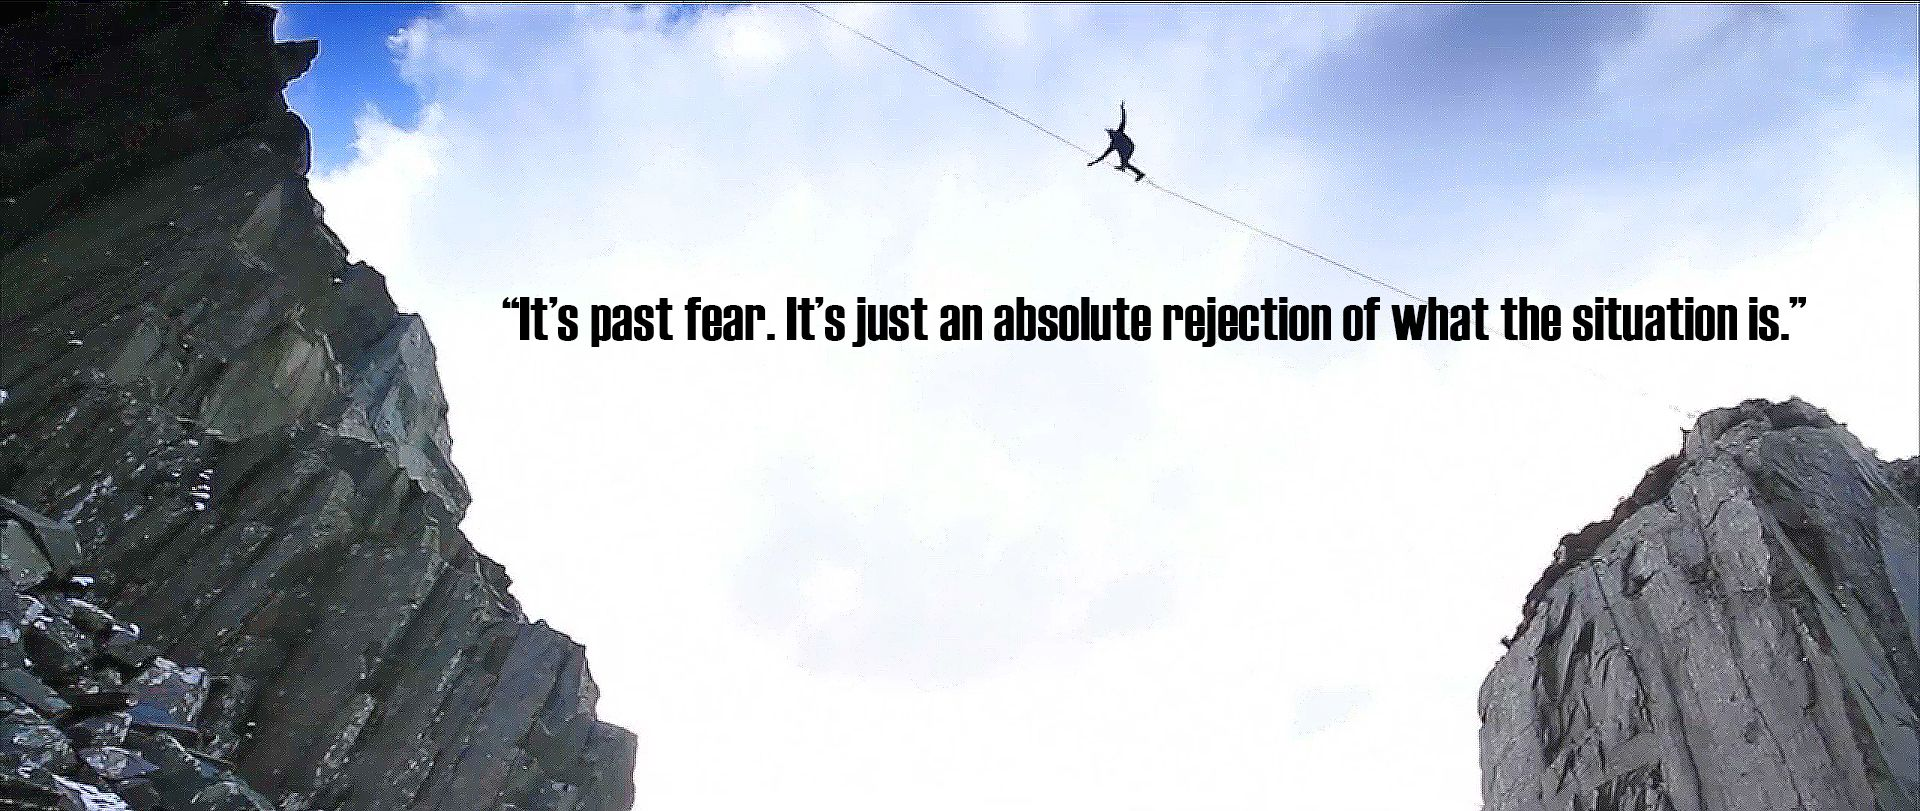 When Fear Meets The Line Sport Quotes Motivational Excellence Quotes Adventure Sports